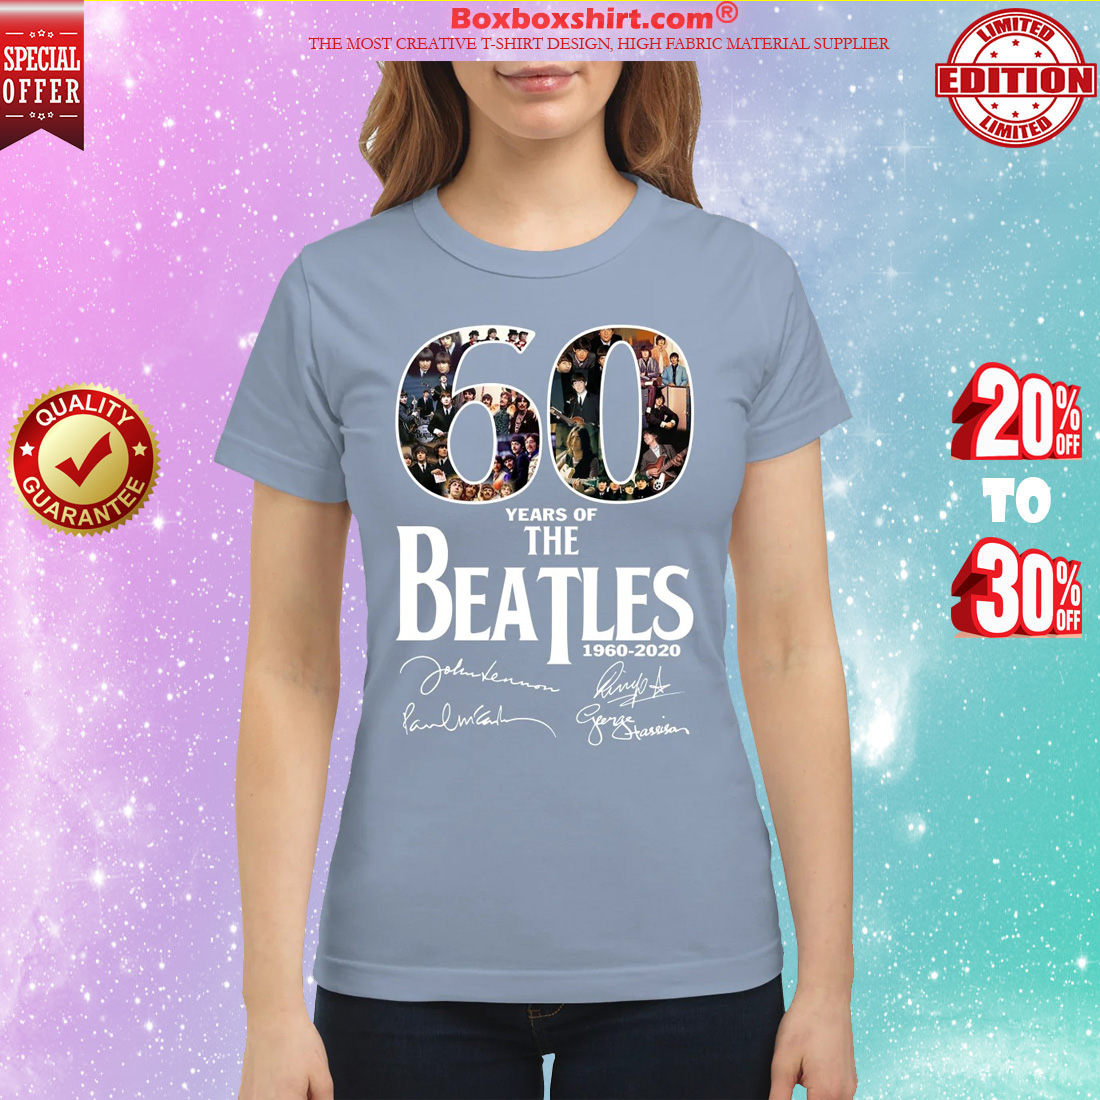 The Beatles 60 years classic shirt